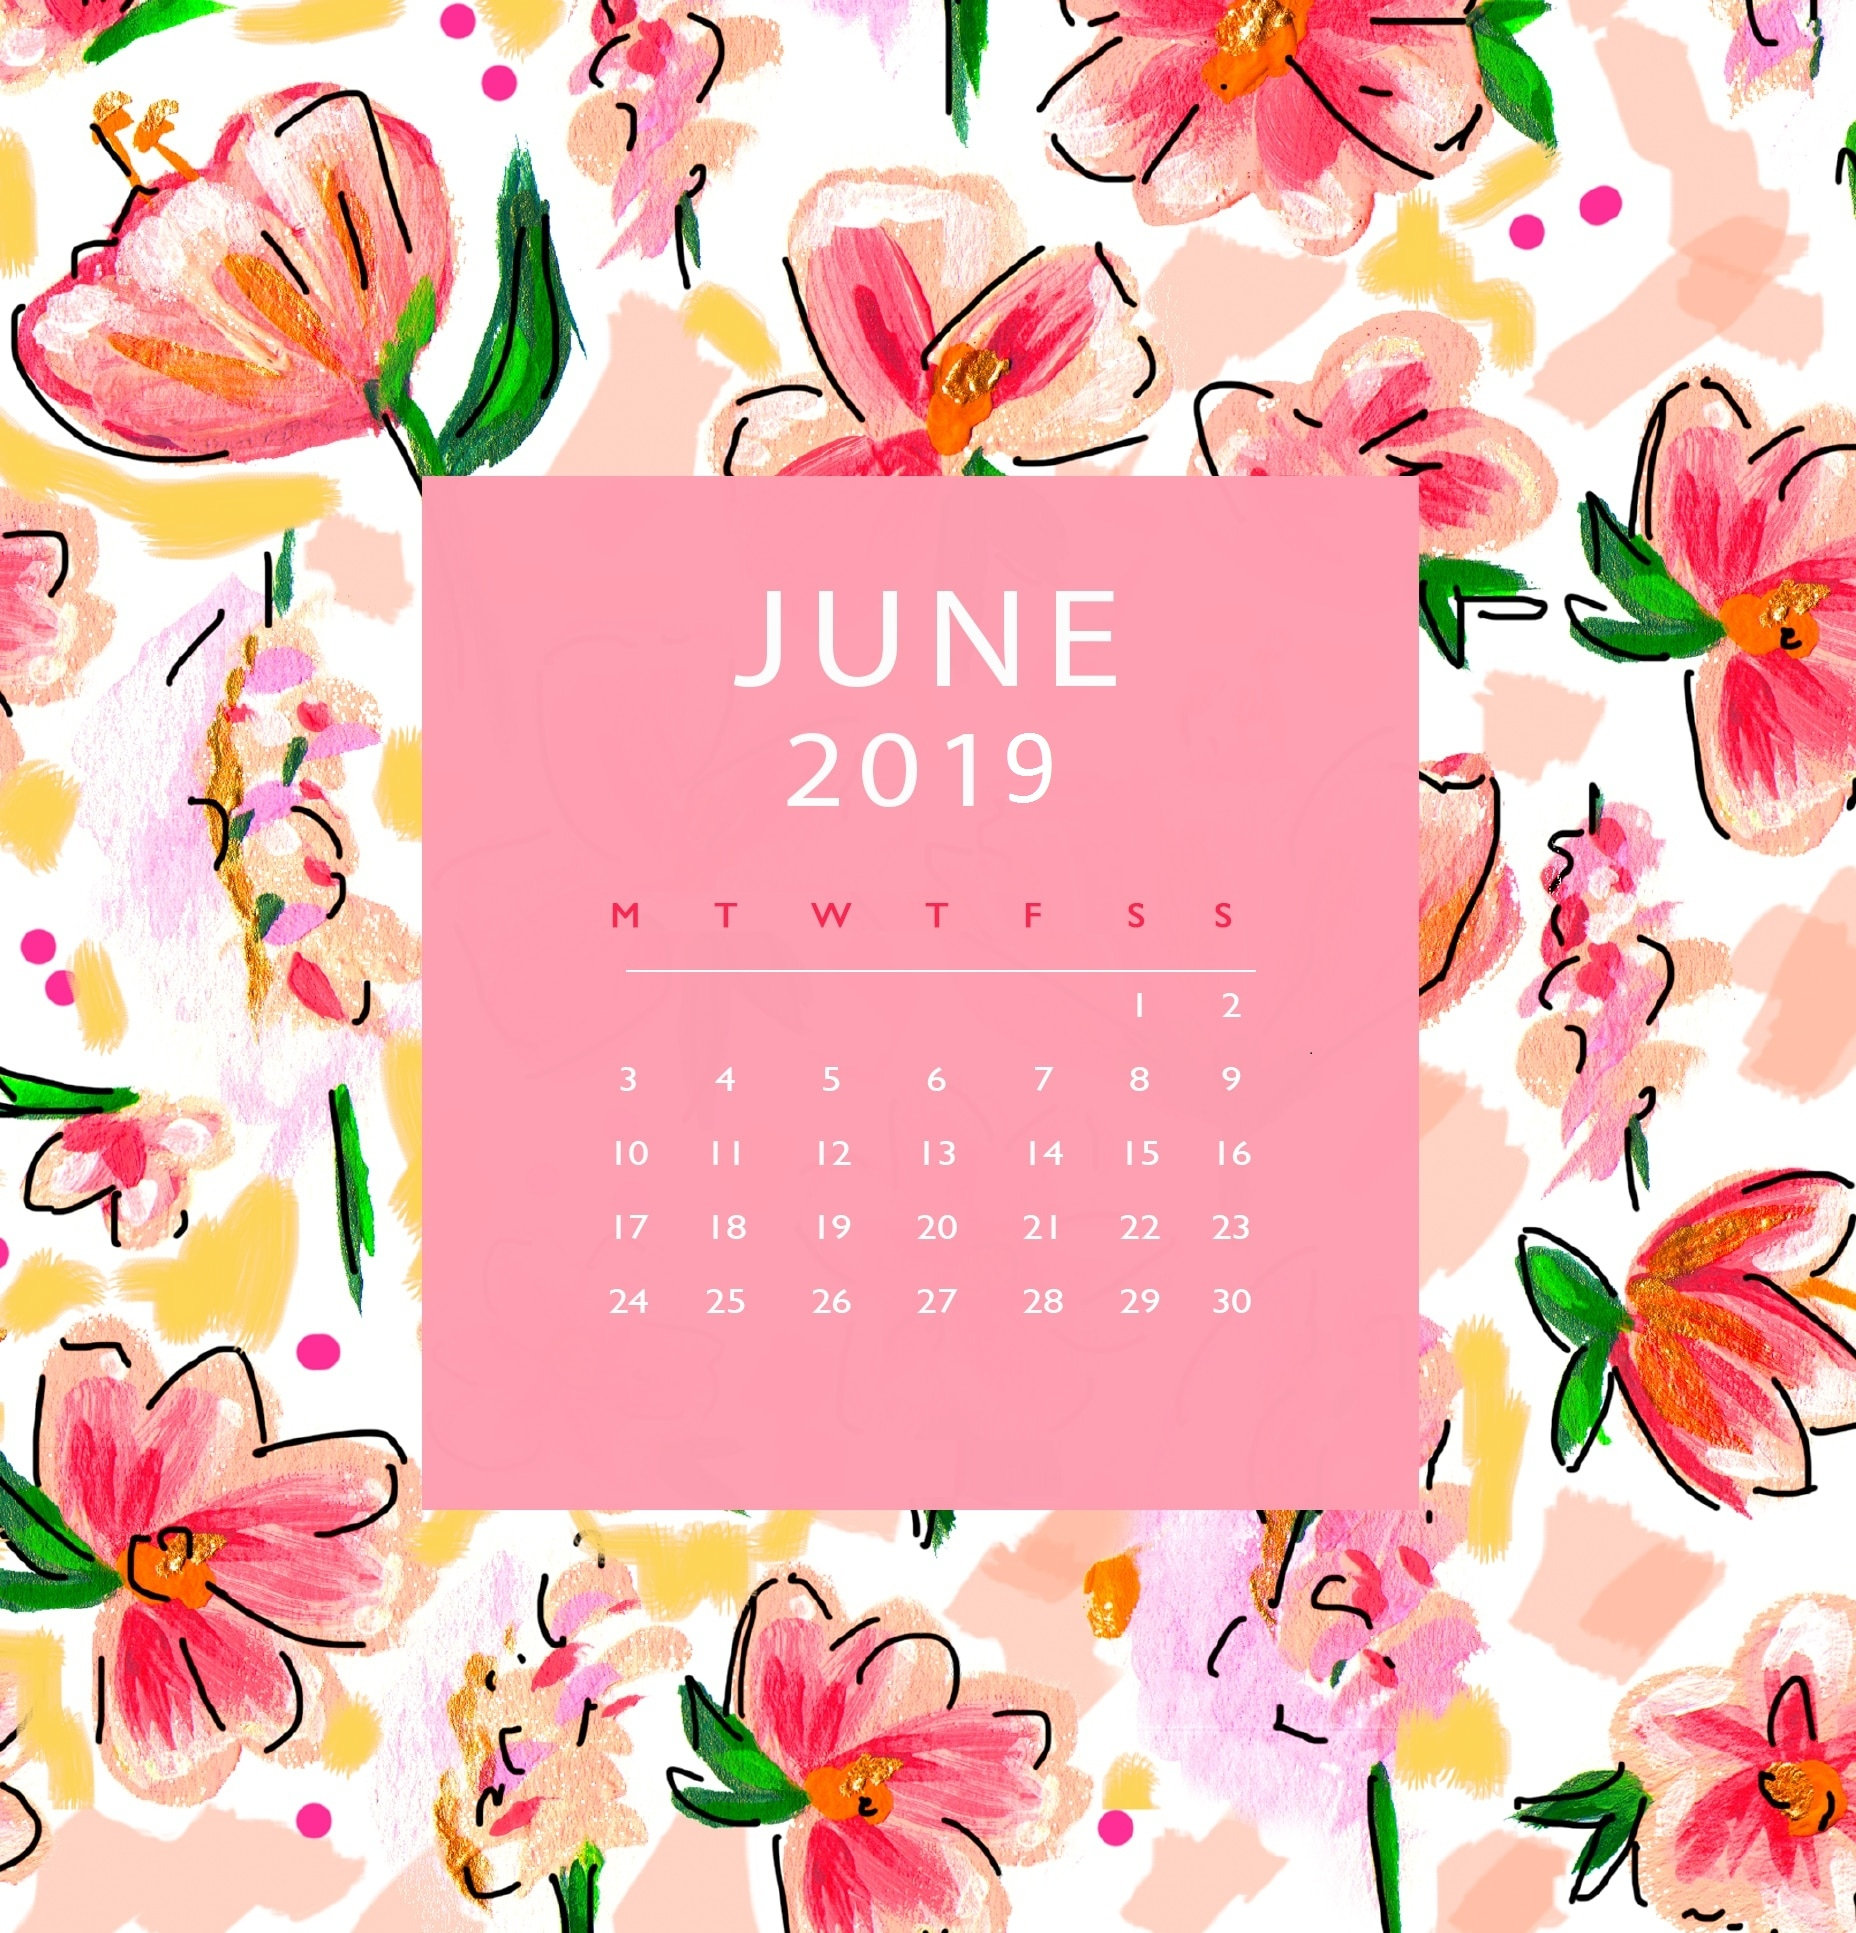 june 2019 iphone calendar wallpaper::June 2019 iPhone Calendar Wallpaper